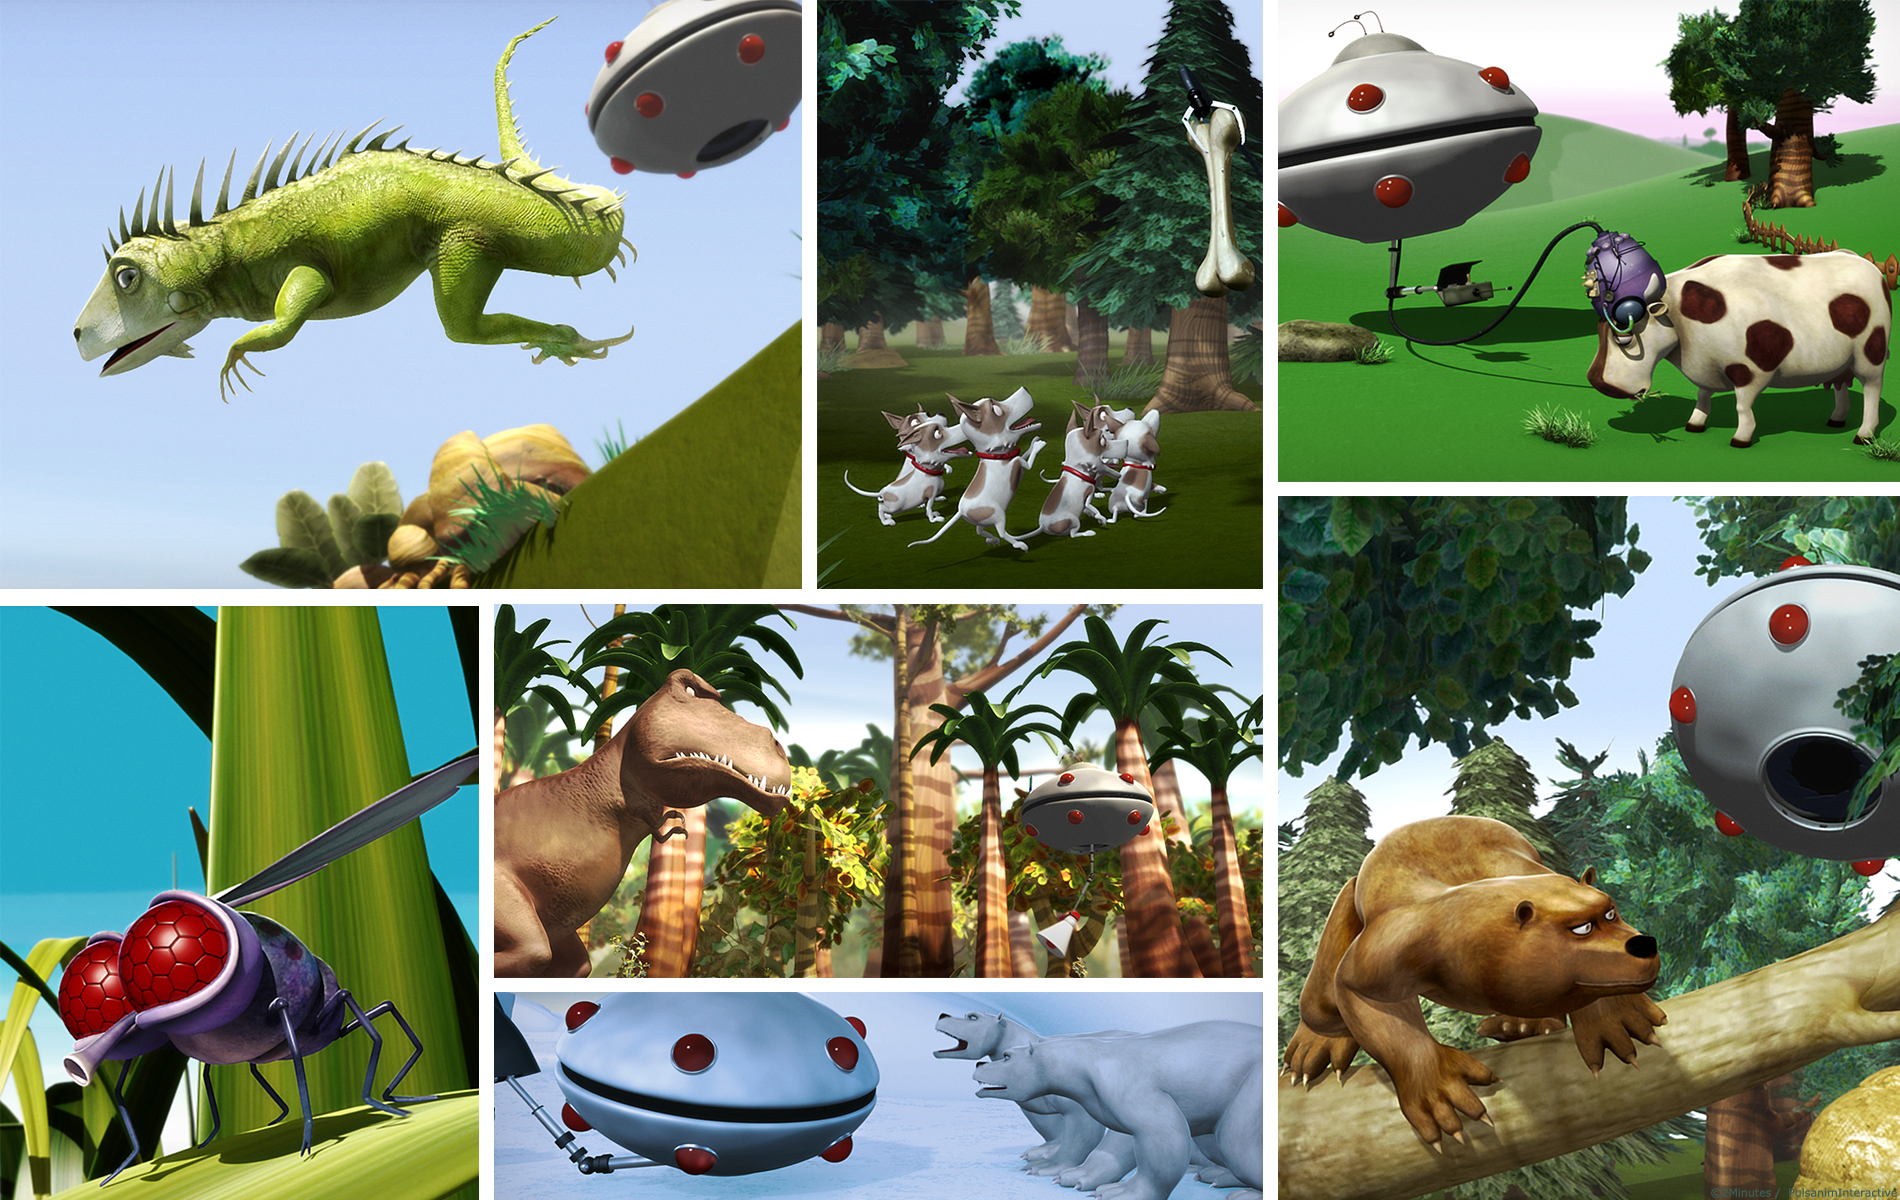 Alien zoo - Série animée 3D - Décors, animatique, animation, compositing, montage par 2 minutes